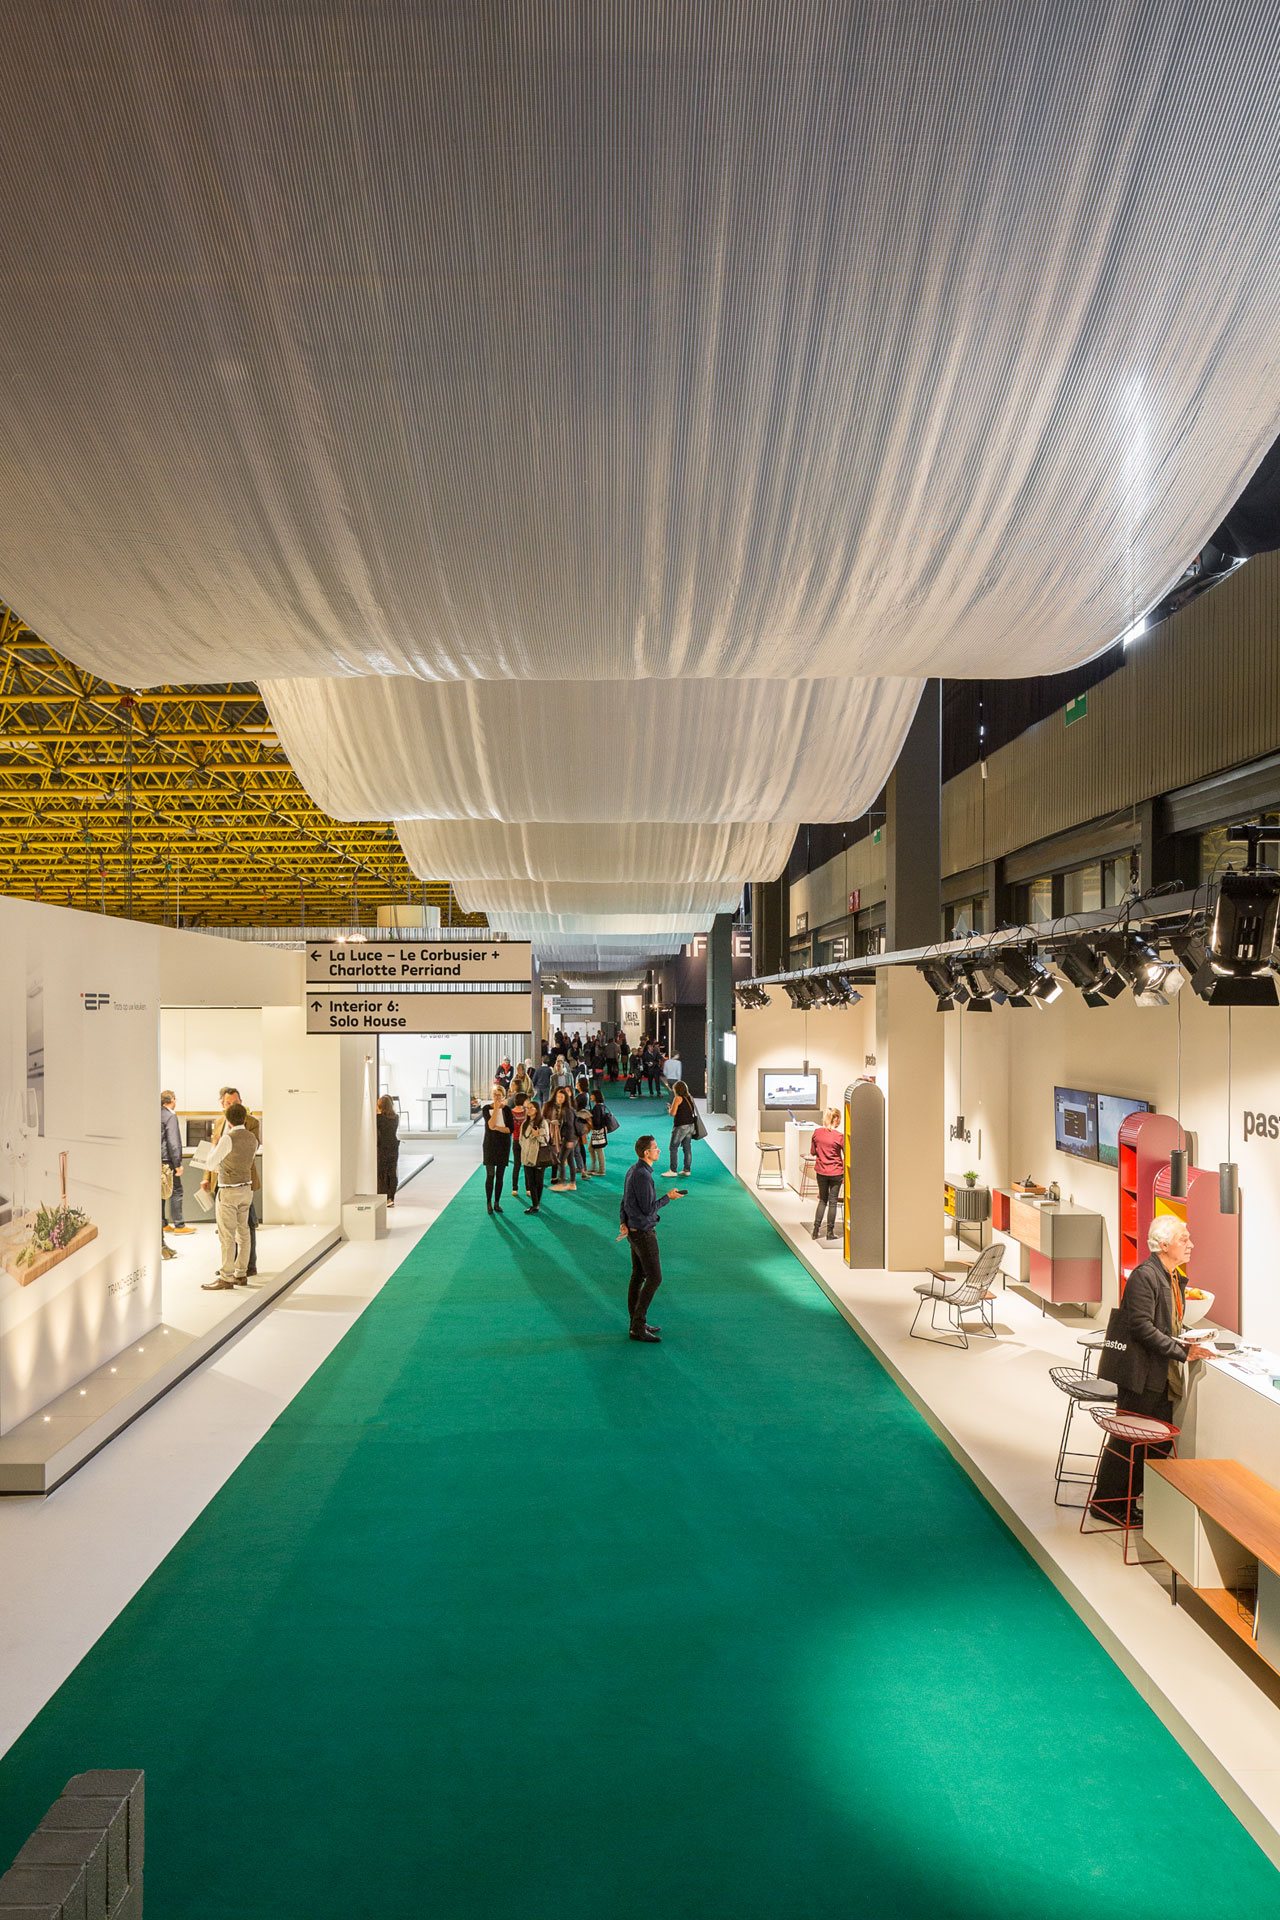 The exhibition halls of Kortrijk Xpo were linked by a festive SILVER LINING structure that was hanging from the ceiling and guiding the visitors.